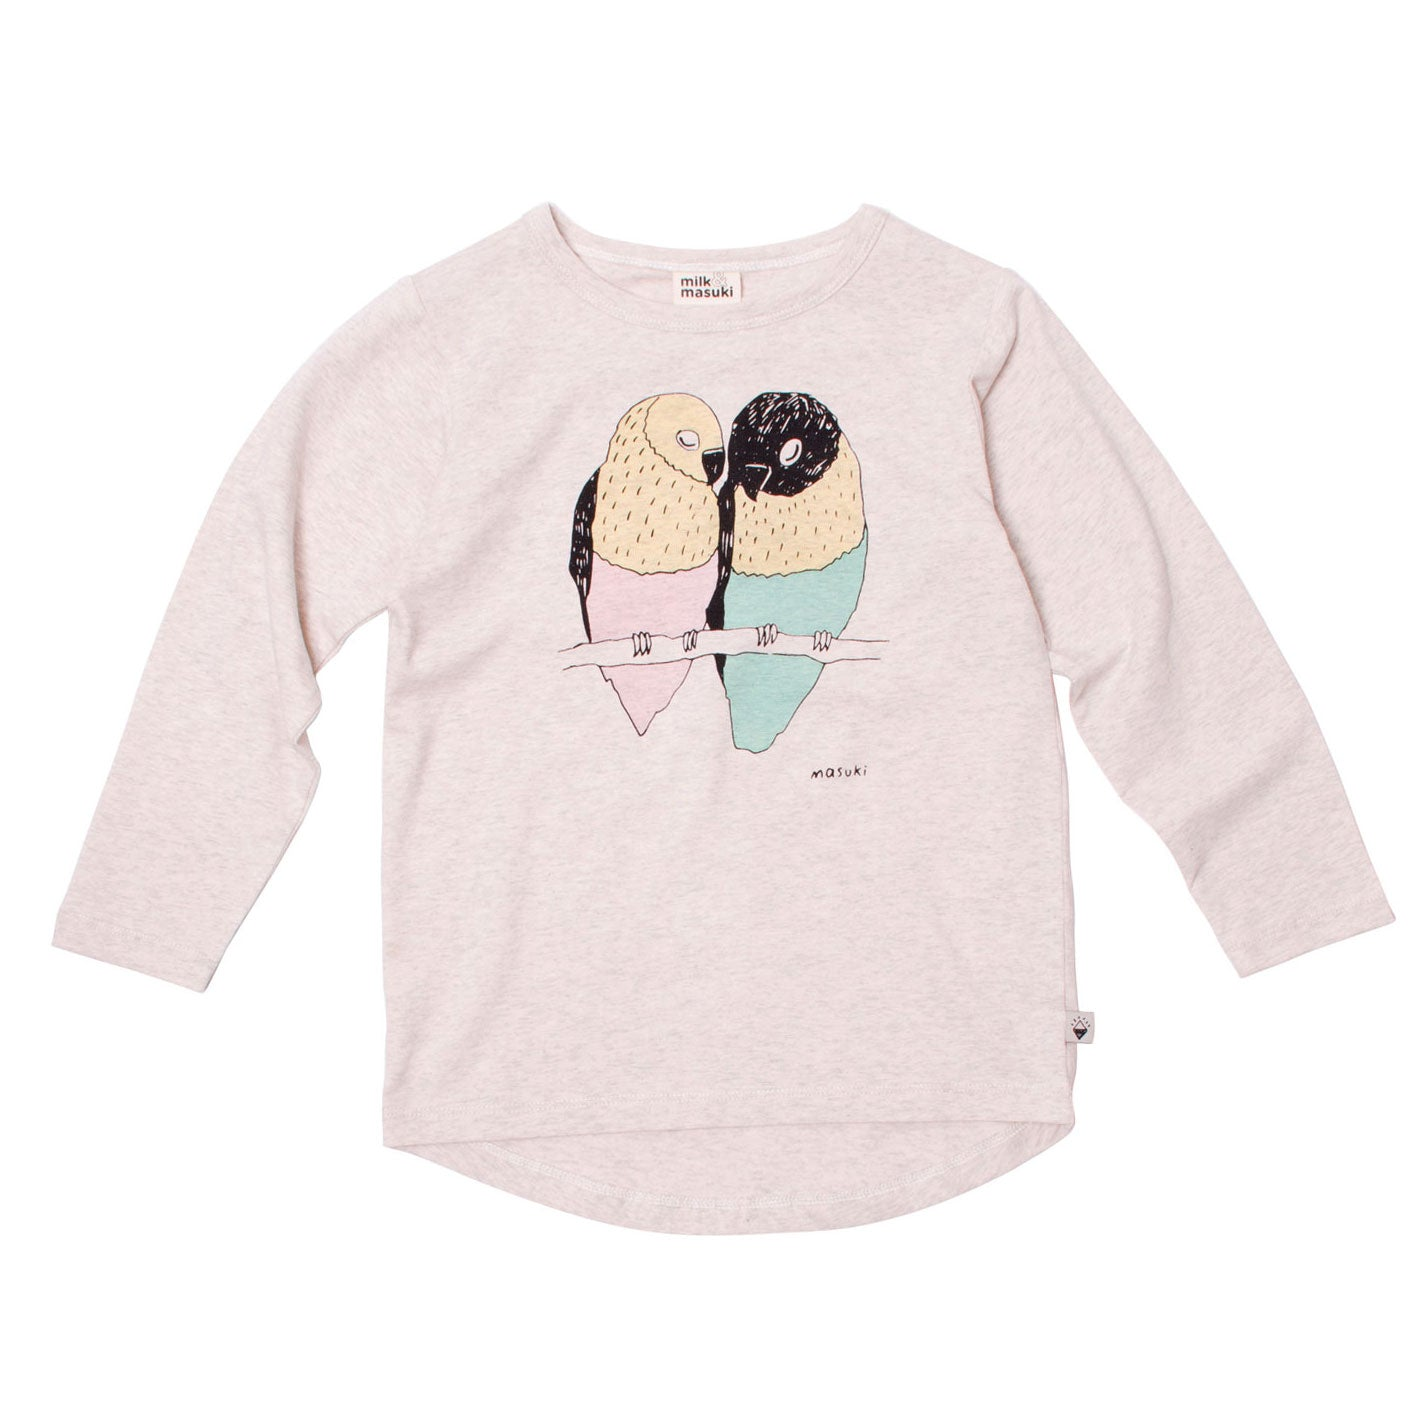 Lovebirds Long Sleeve Girls Tee